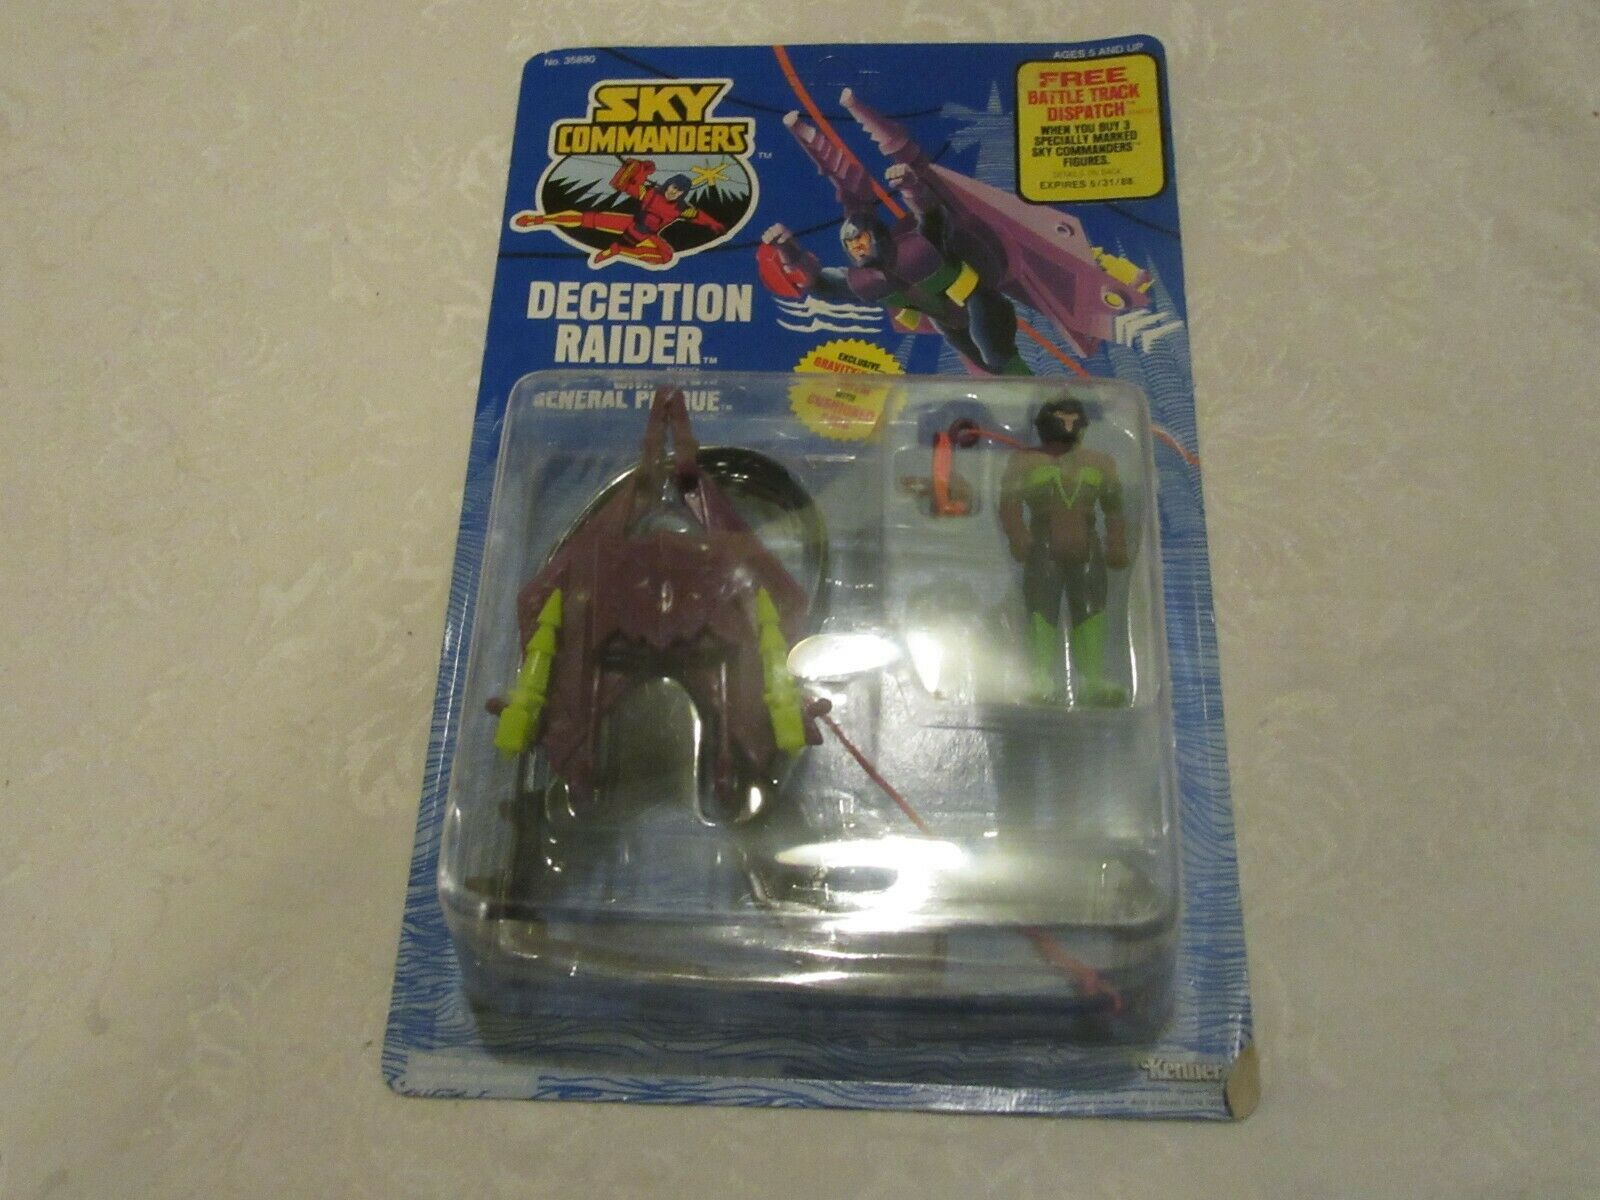 Kenner Sky Commander Deception Raider med General Plague 1987 Action Figur